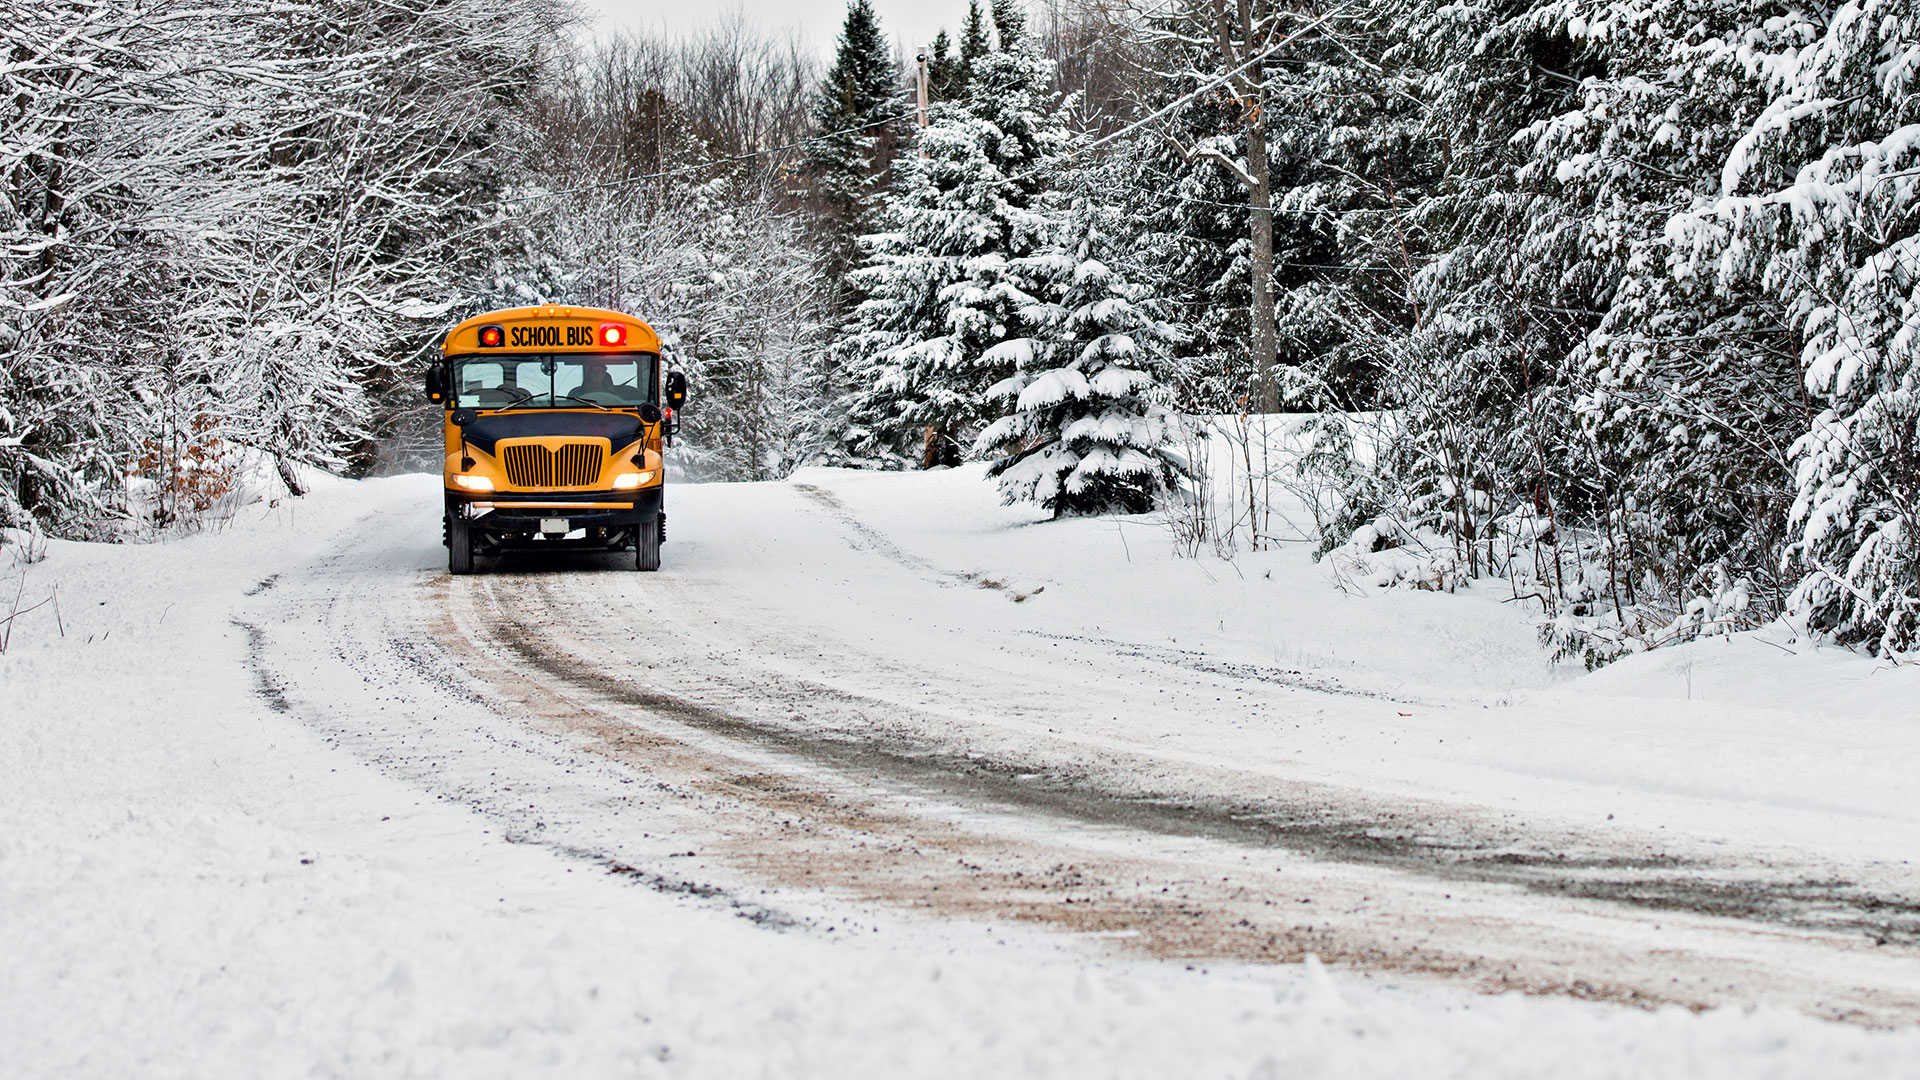 Montana Schools Property and Liability Insurance Plan - PayneWest Insurance